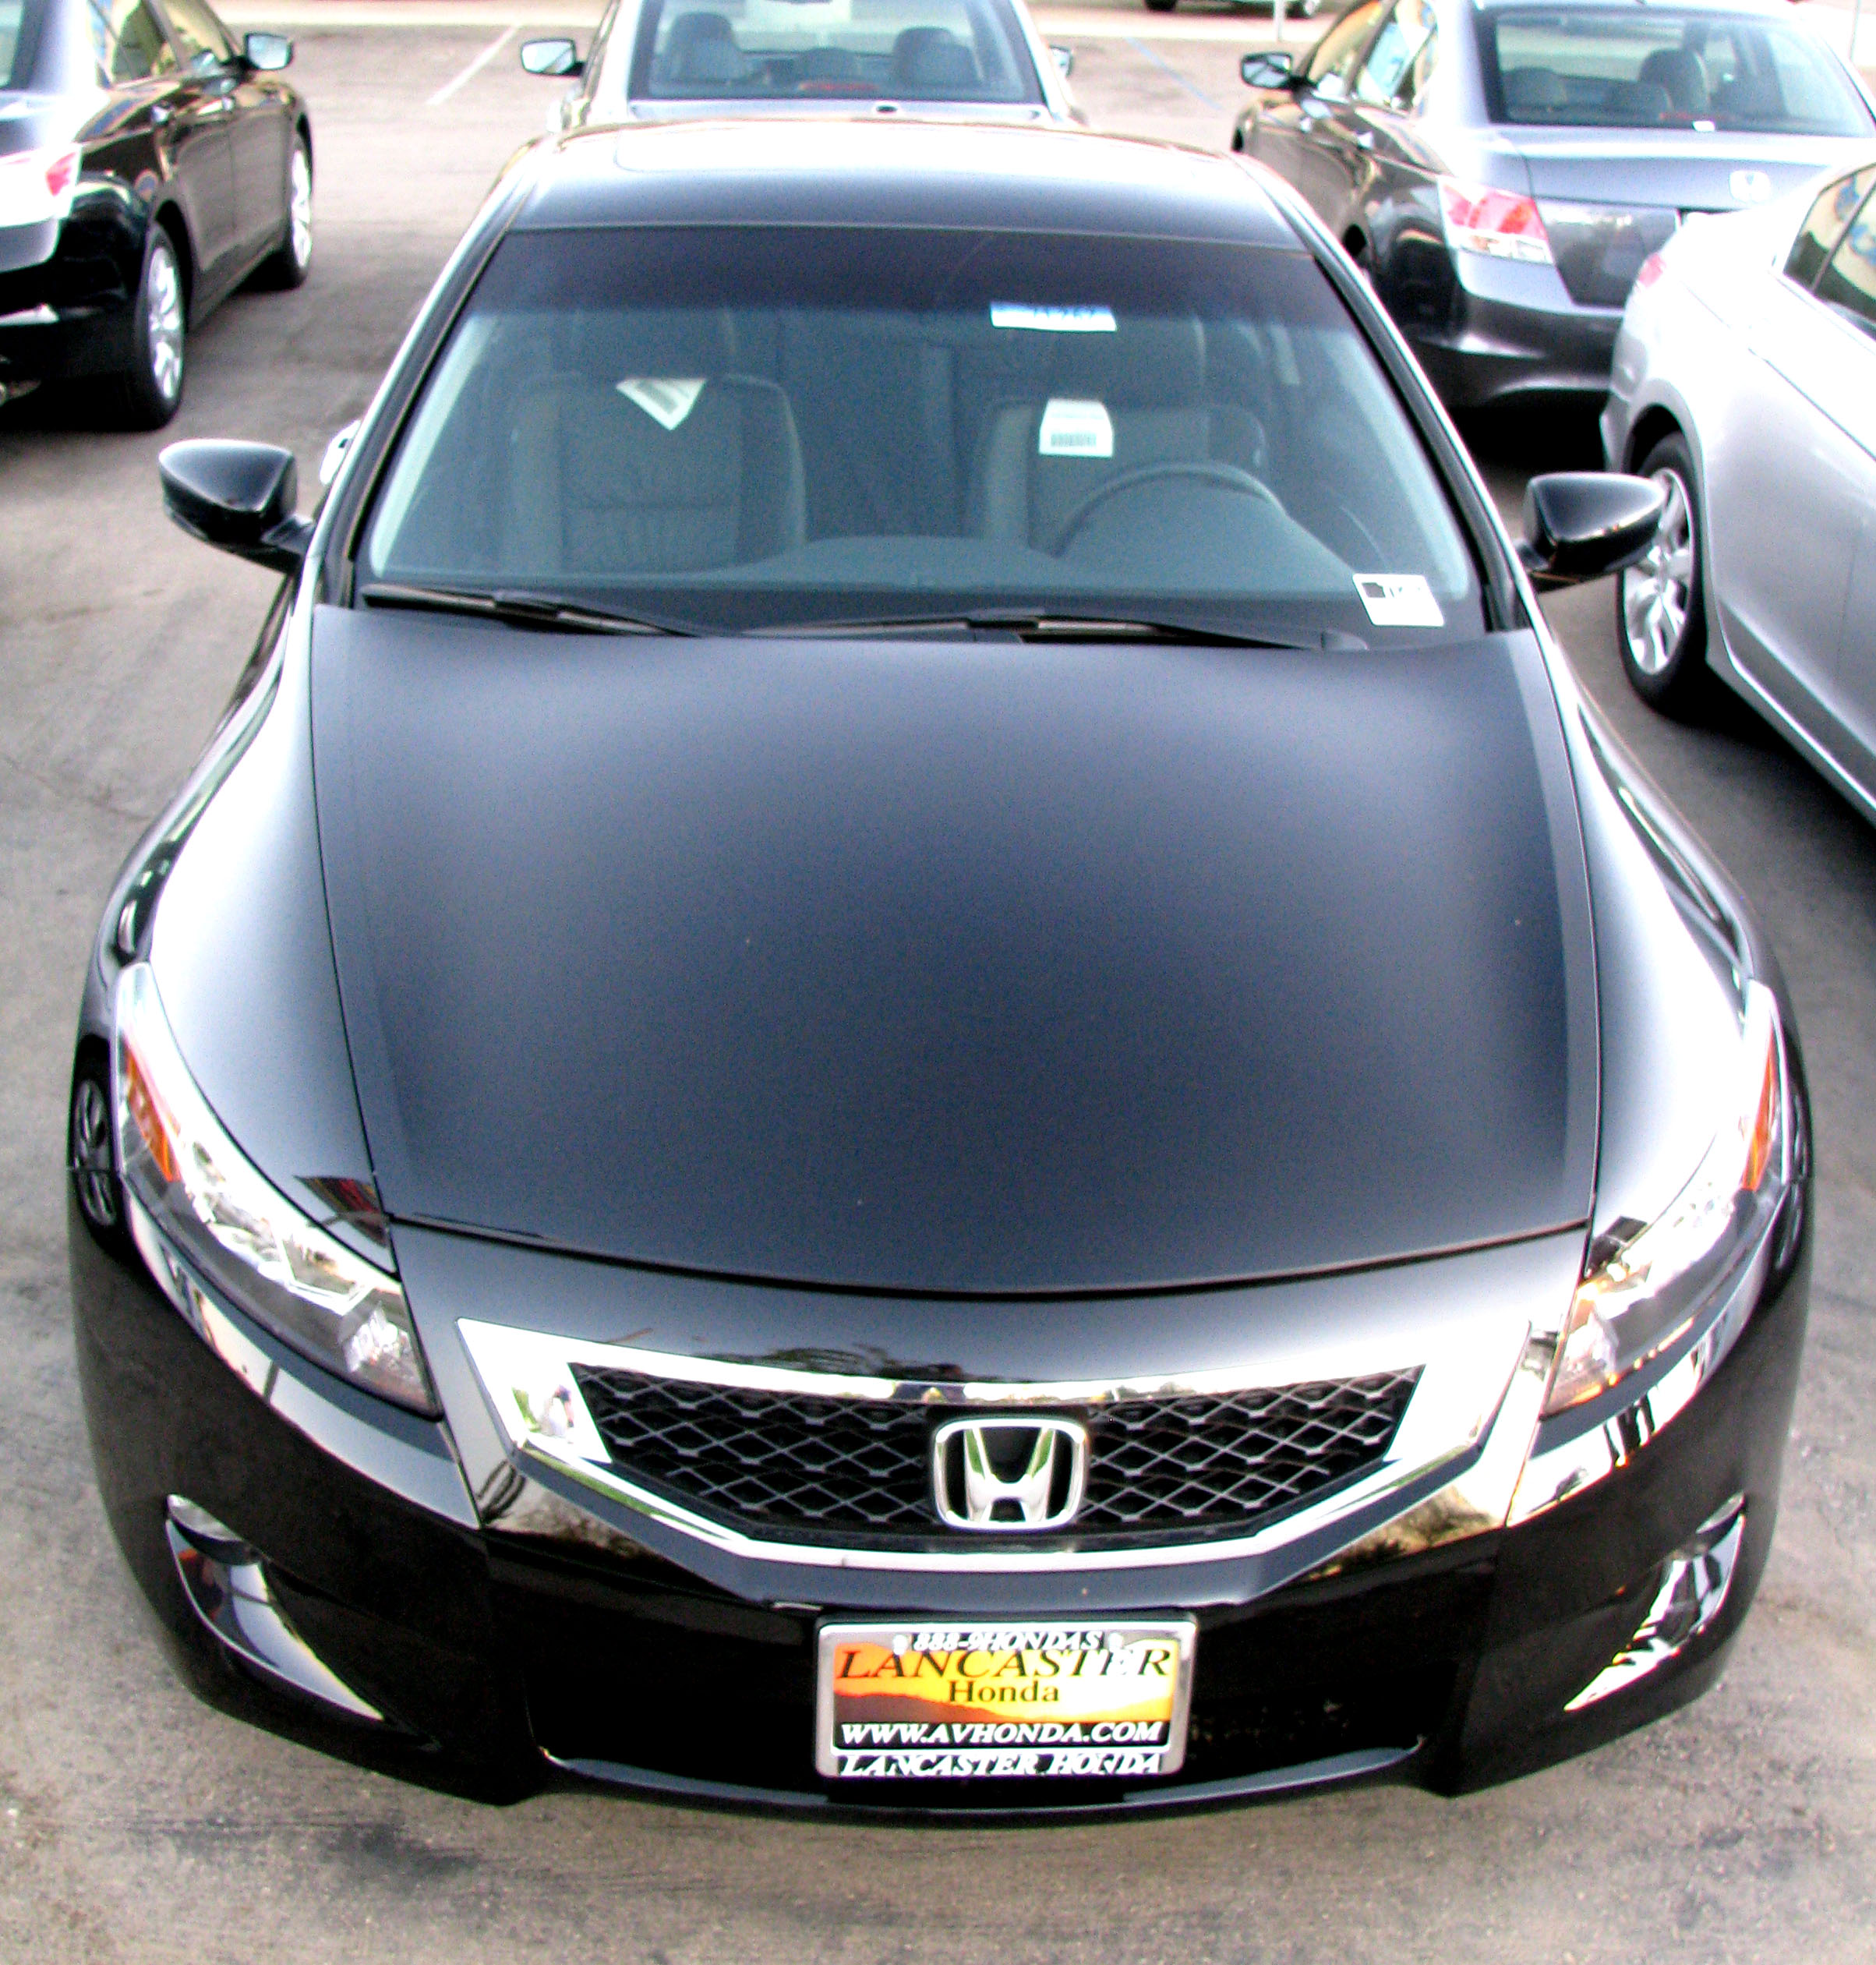 honda accord viii coupe 2009 pictures #4